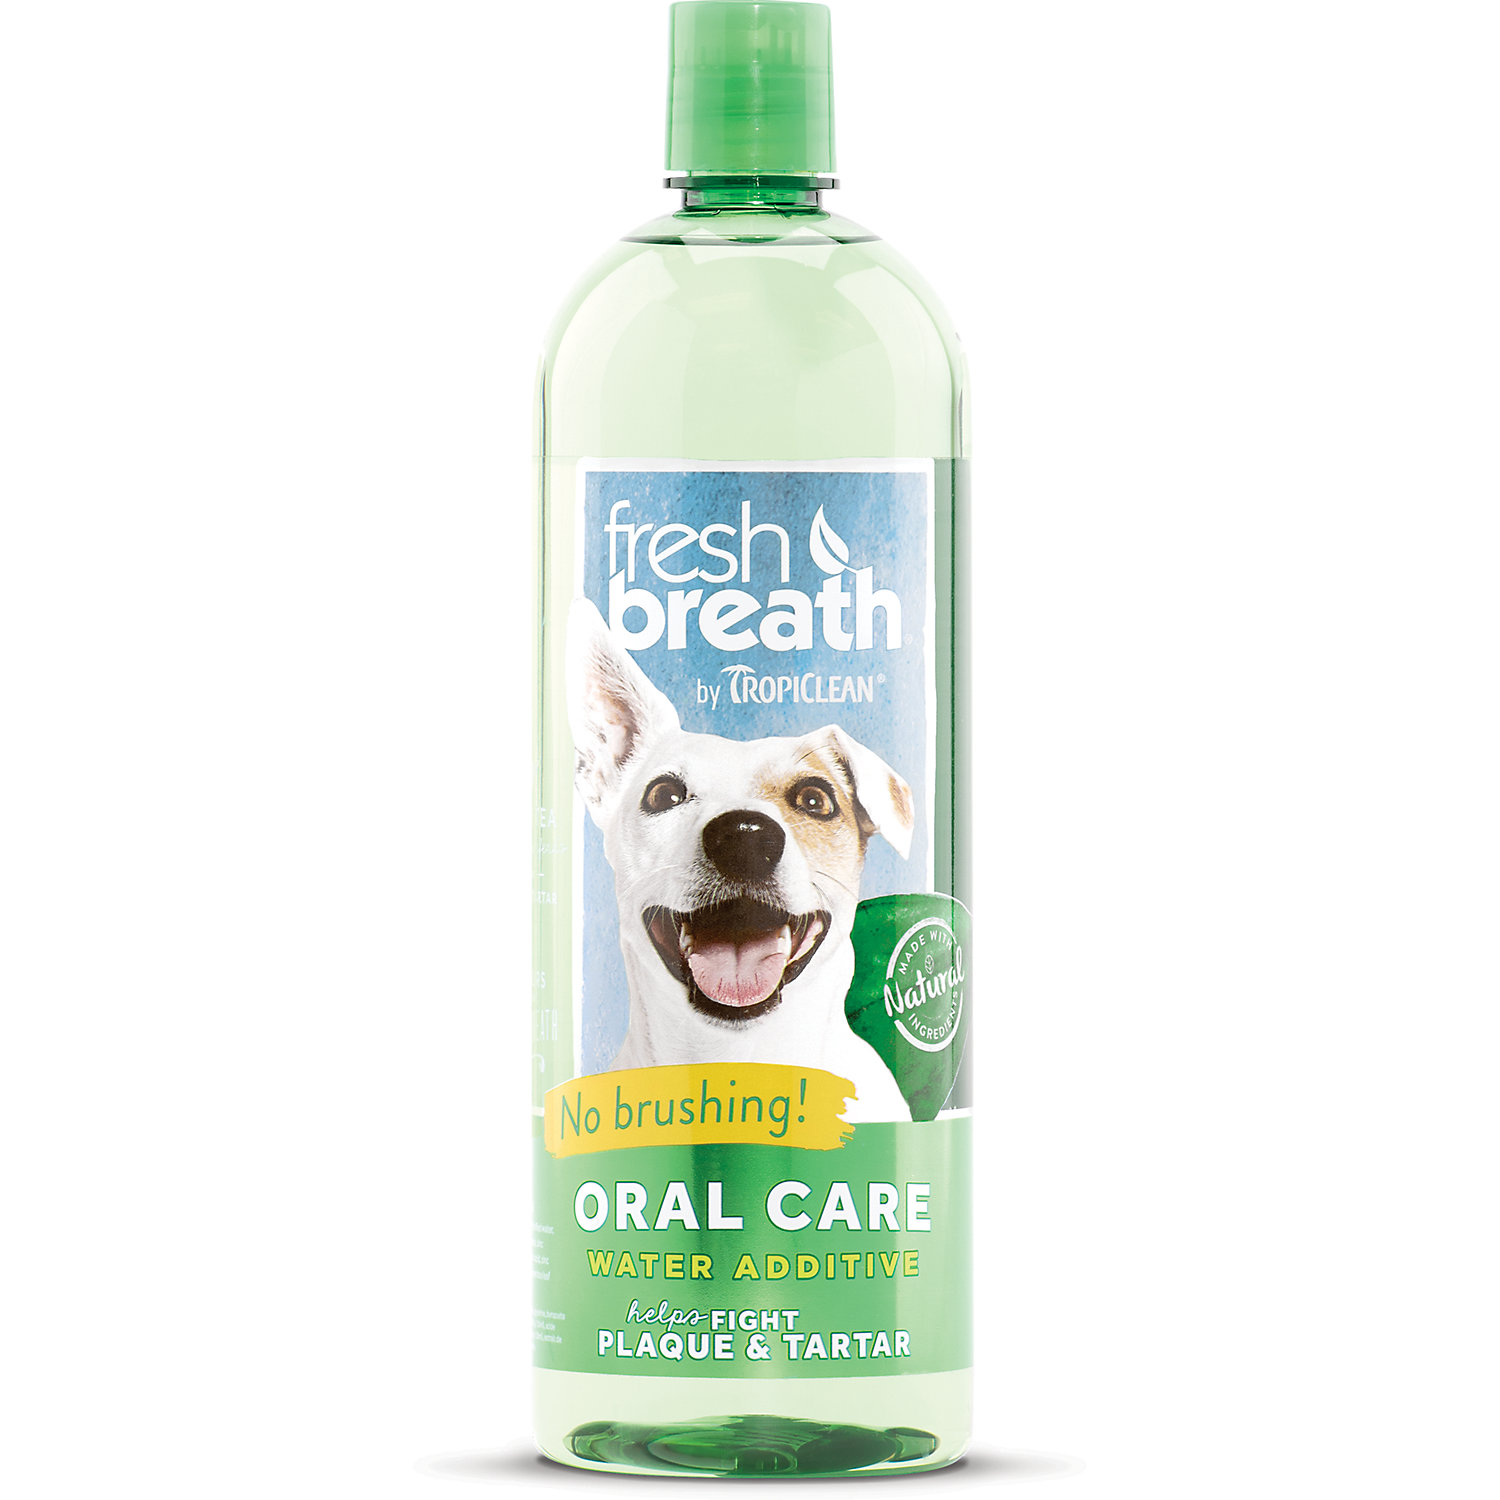 Tropiclean Fresh Breath Oral Care Water Additive For Dogs 32 Oz.